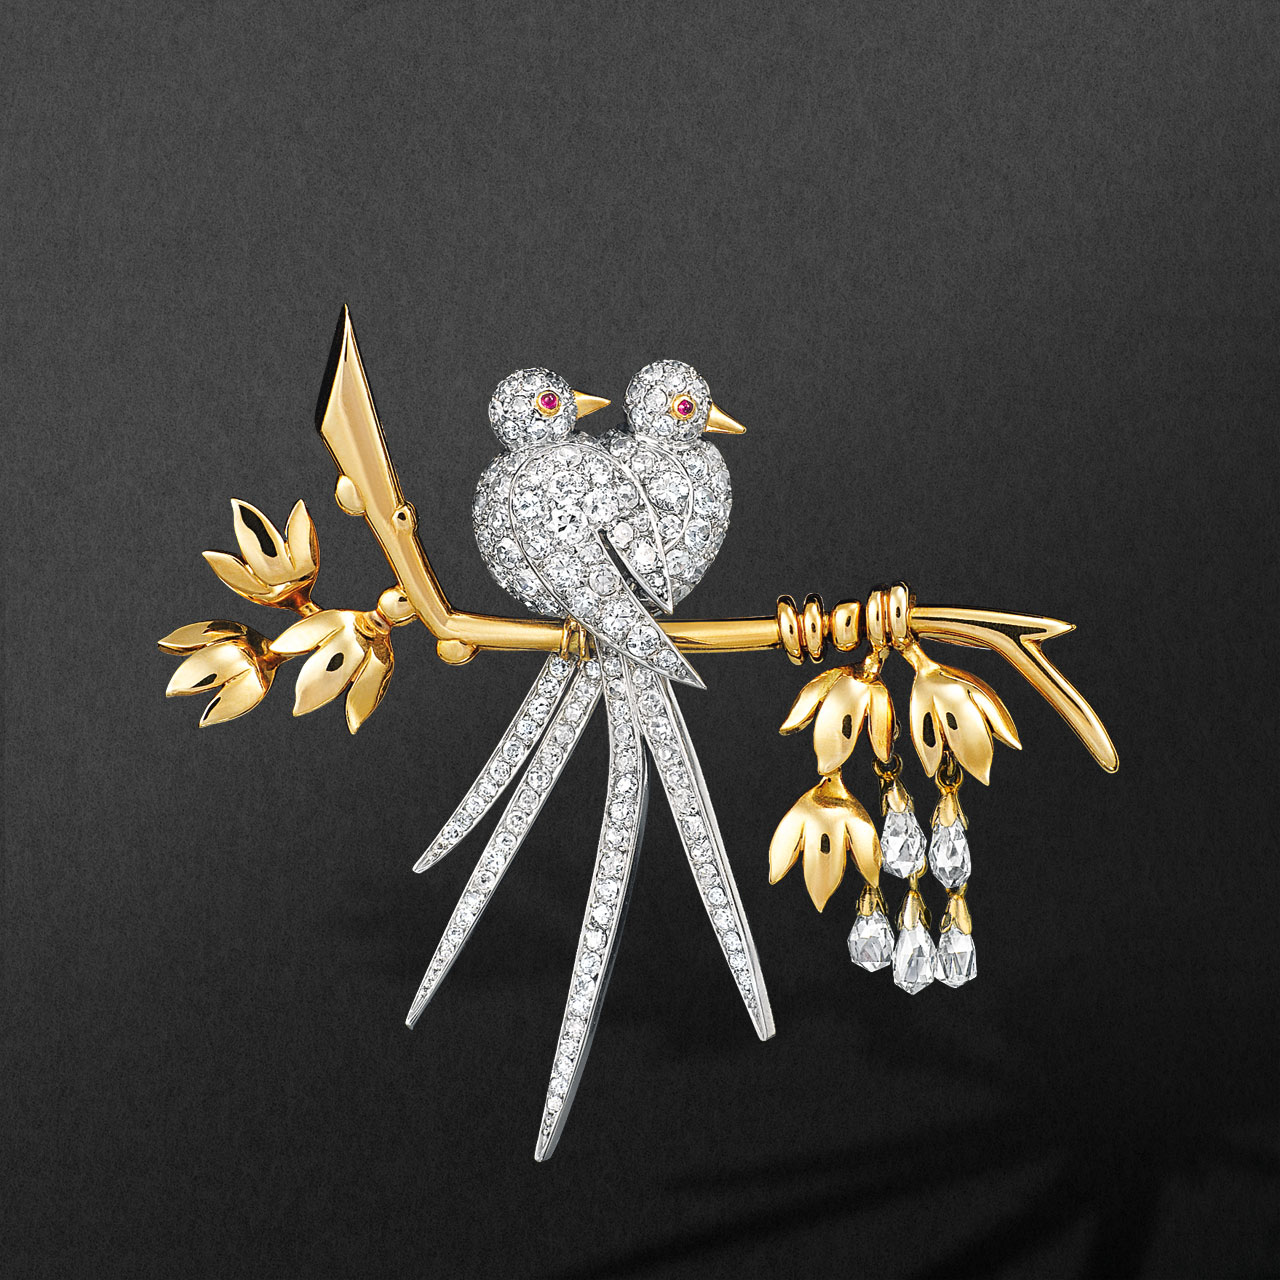 Lovebirds clip, 1945. Platinum, yellow gold, rubies and diamonds. Van Cleef & Arpels collection.